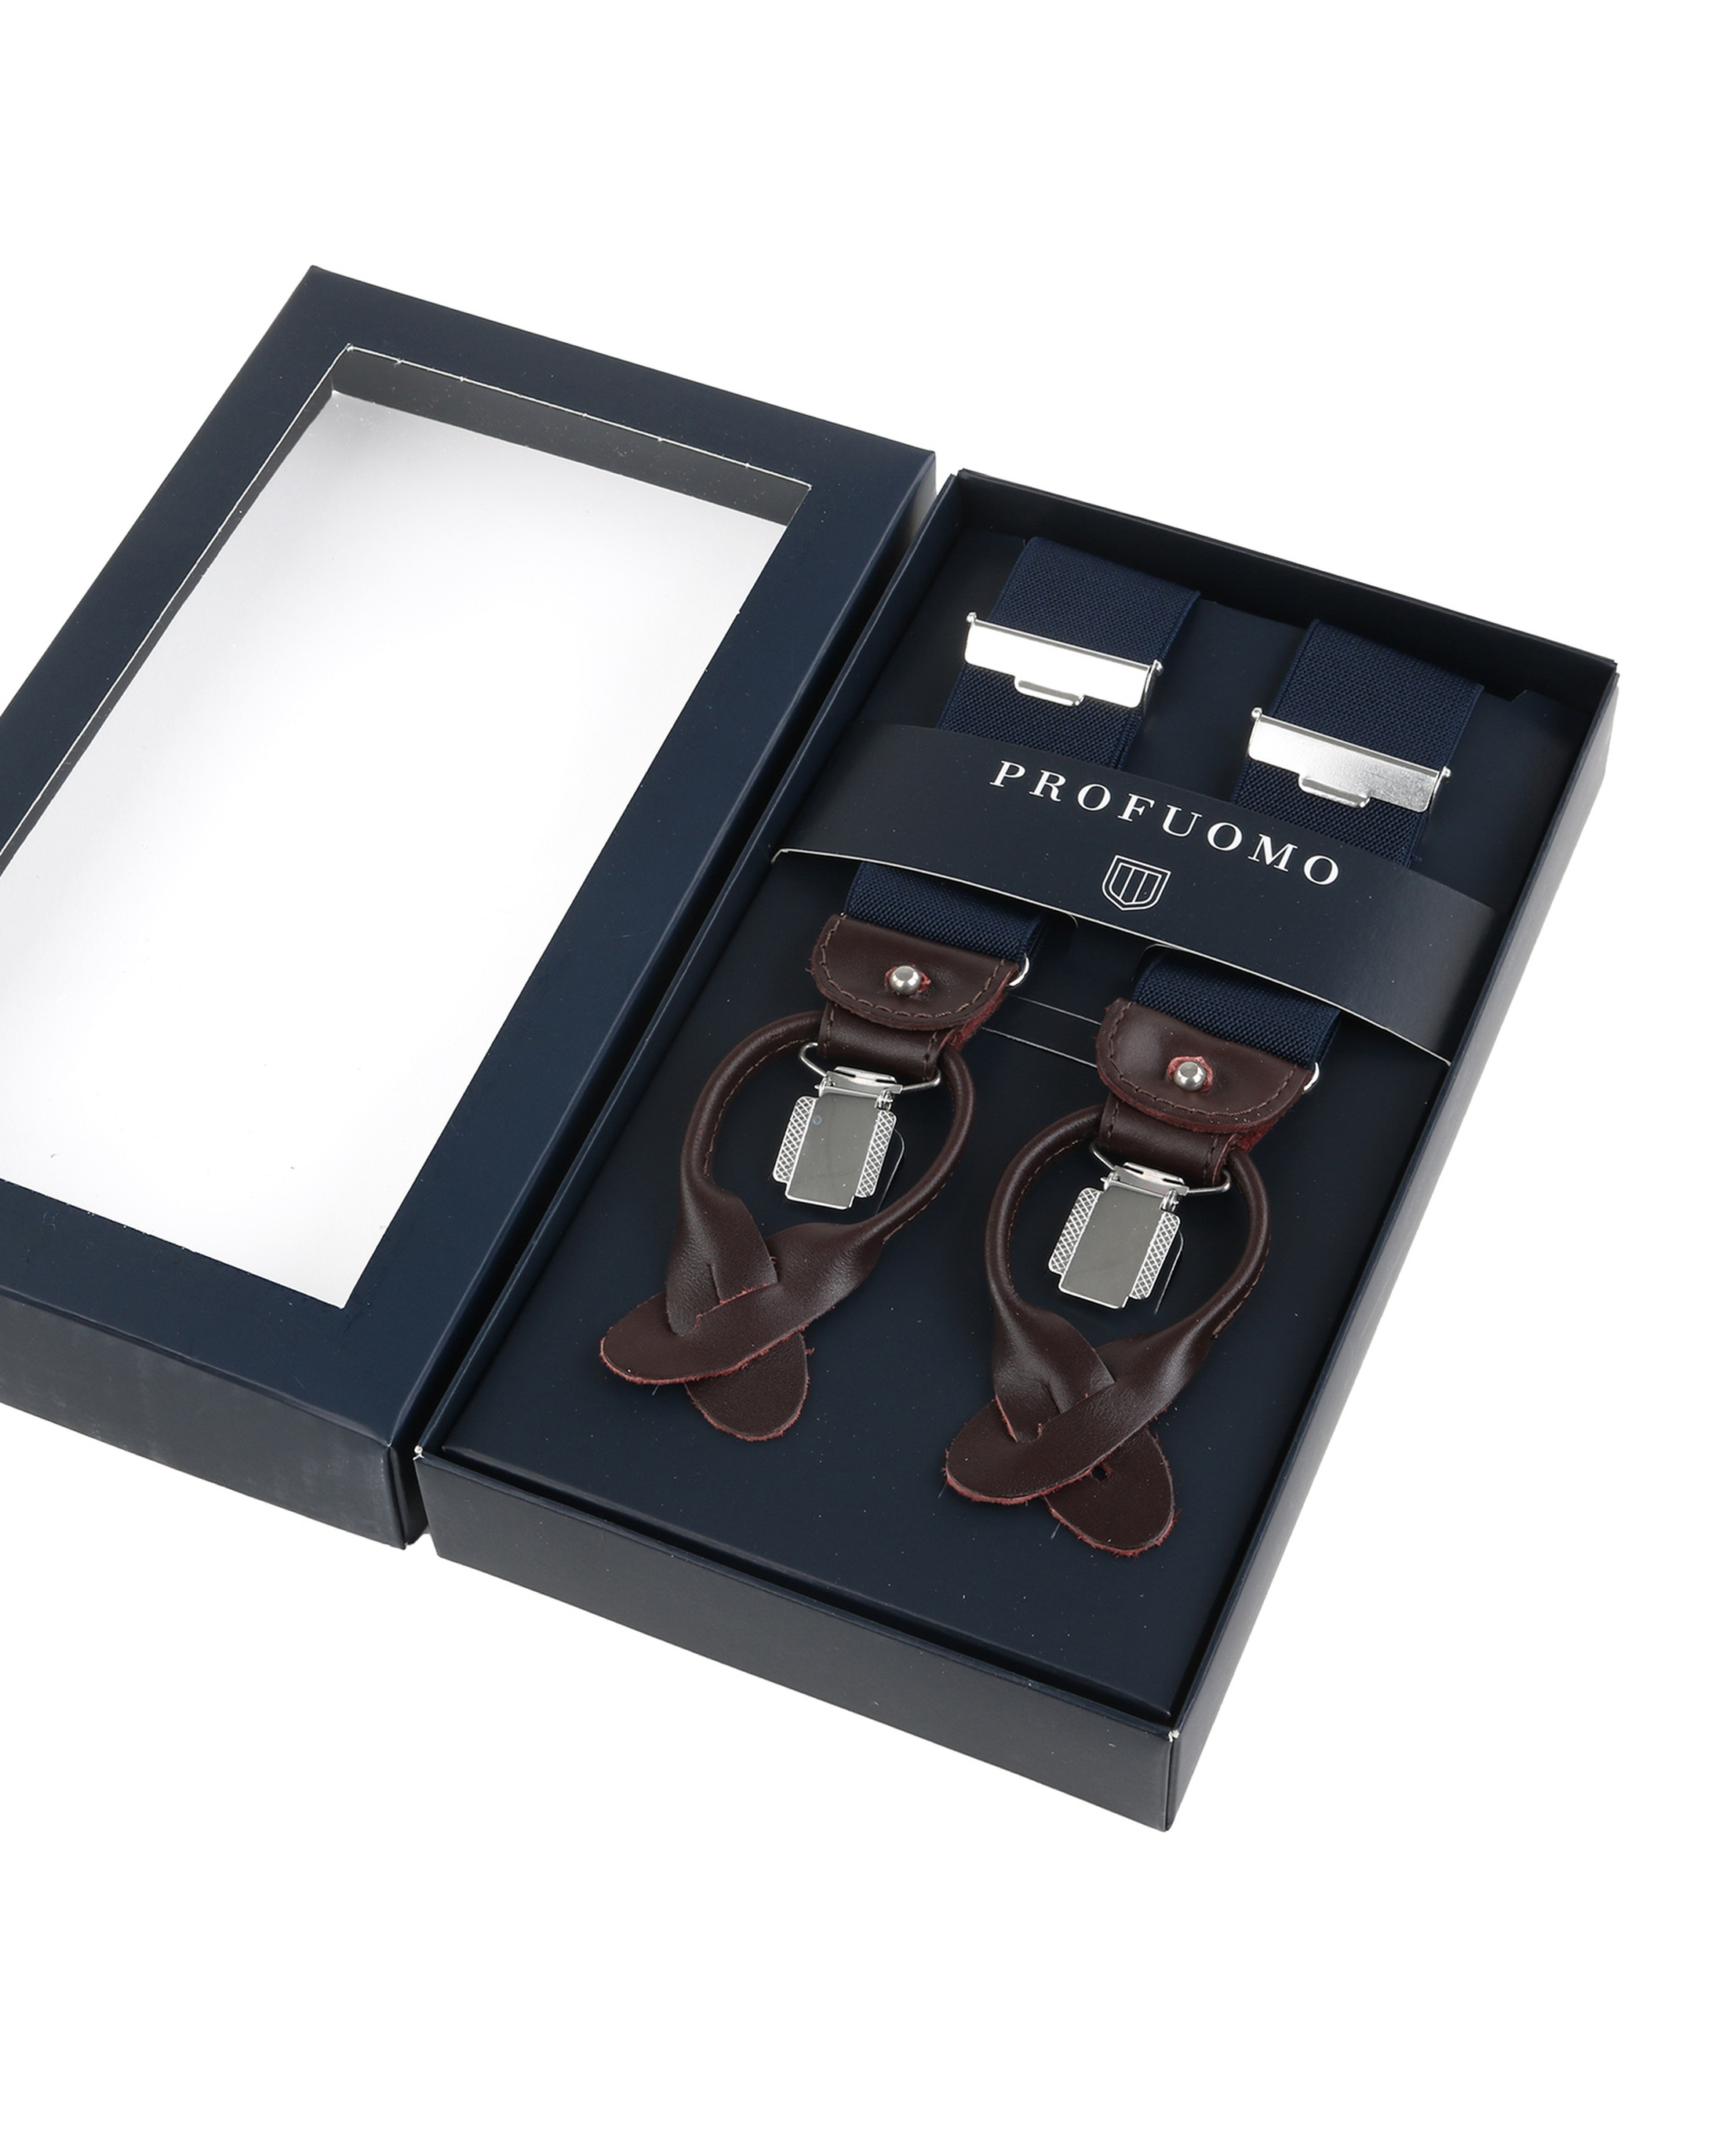 Profuomo Luxury Suspenders Dark Blue foto 2